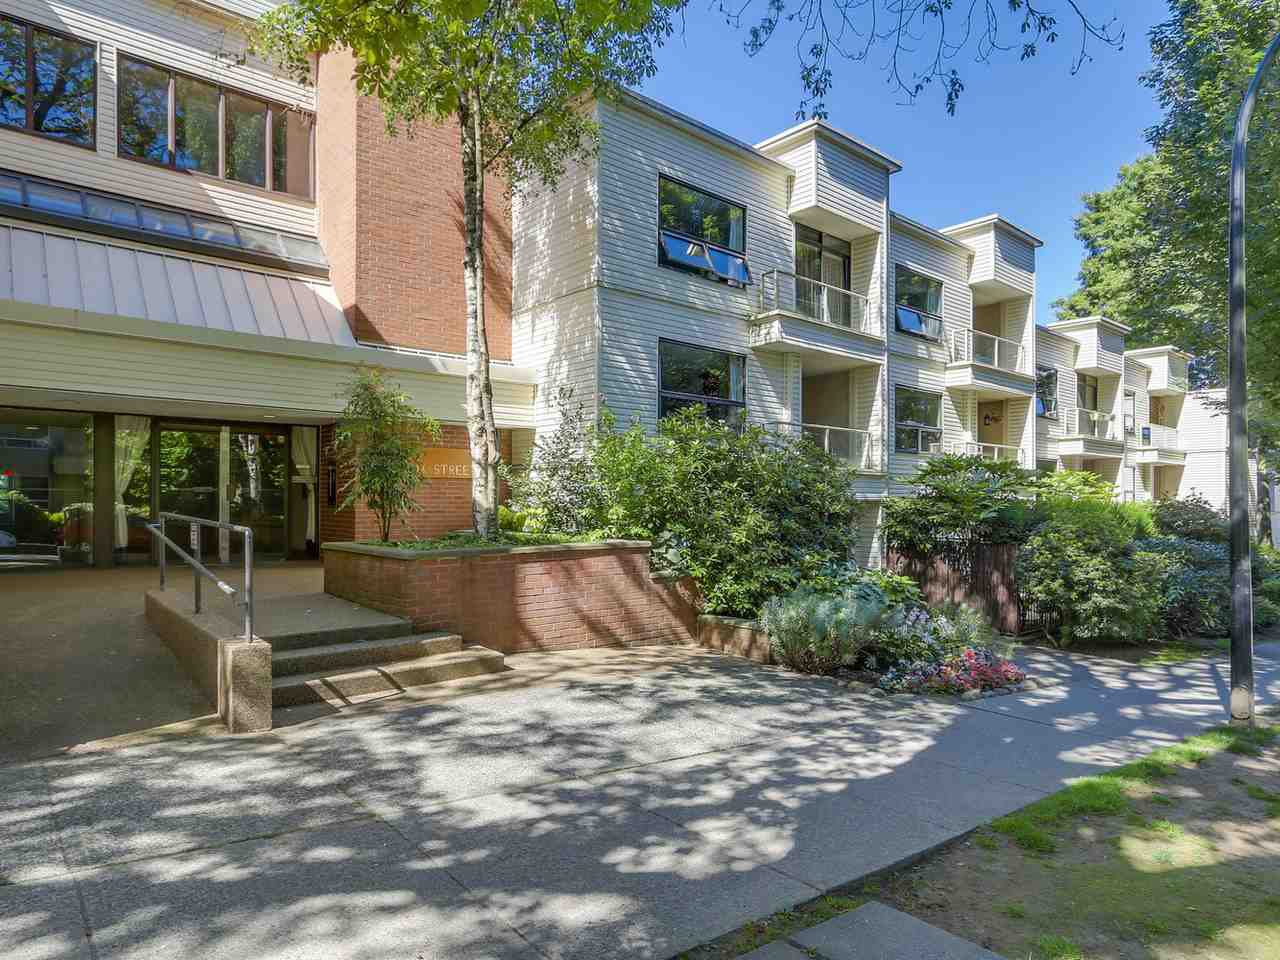 Main Photo: 203 1350 COMOX STREET in Vancouver: West End VW Condo for sale (Vancouver West)  : MLS®# R2096404